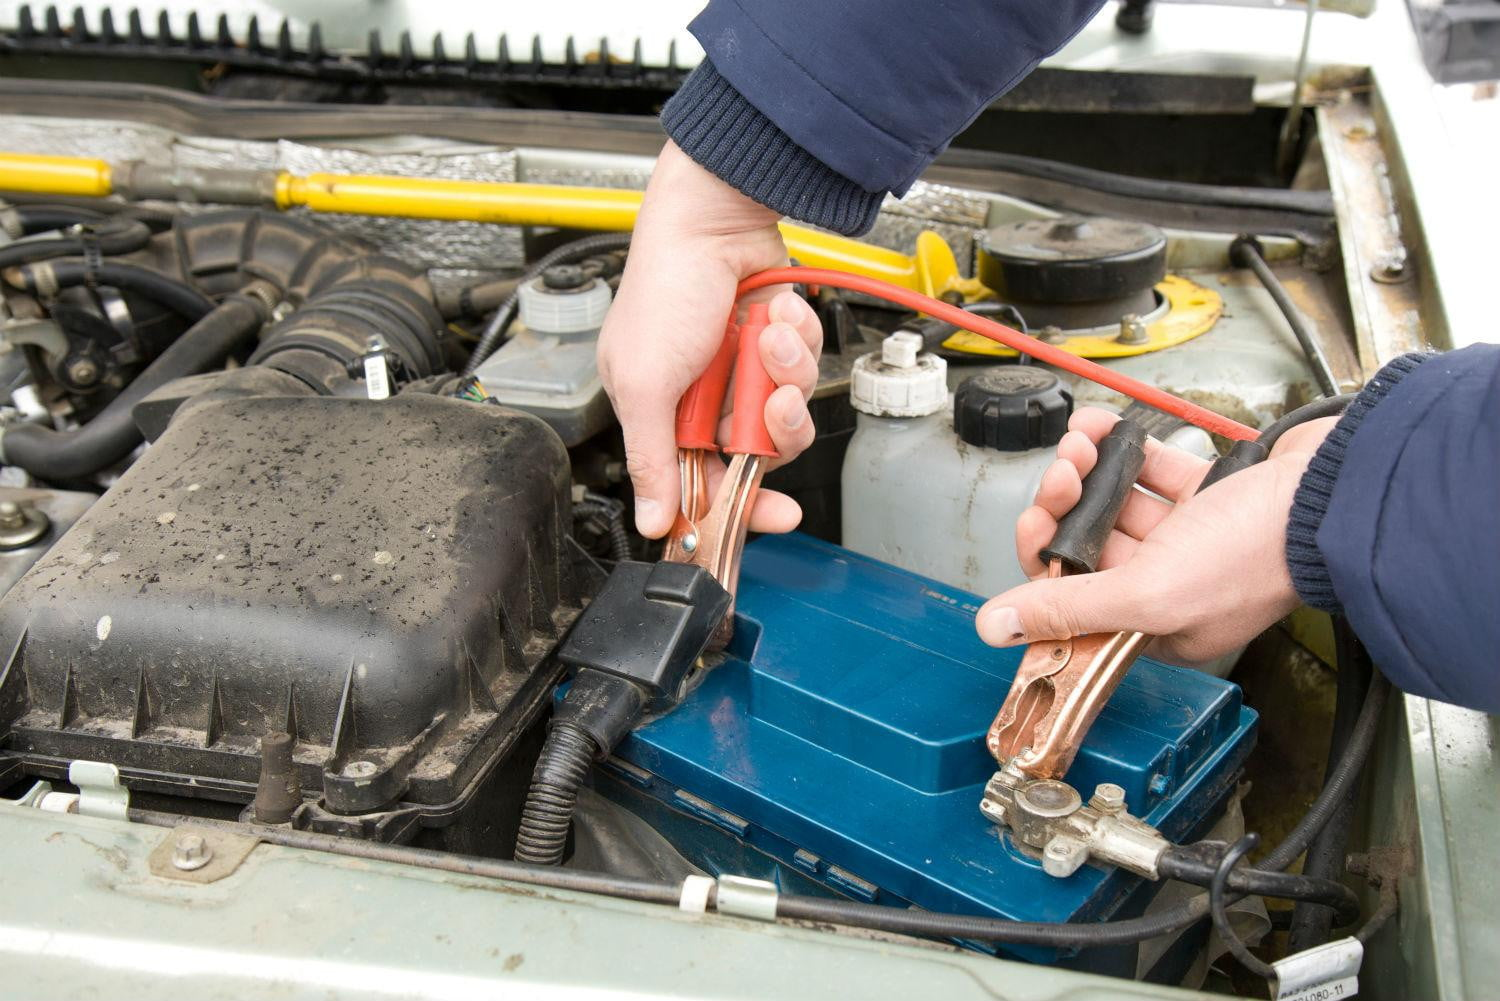 How To Jump A Car Battery The Correct Way Digital Trends